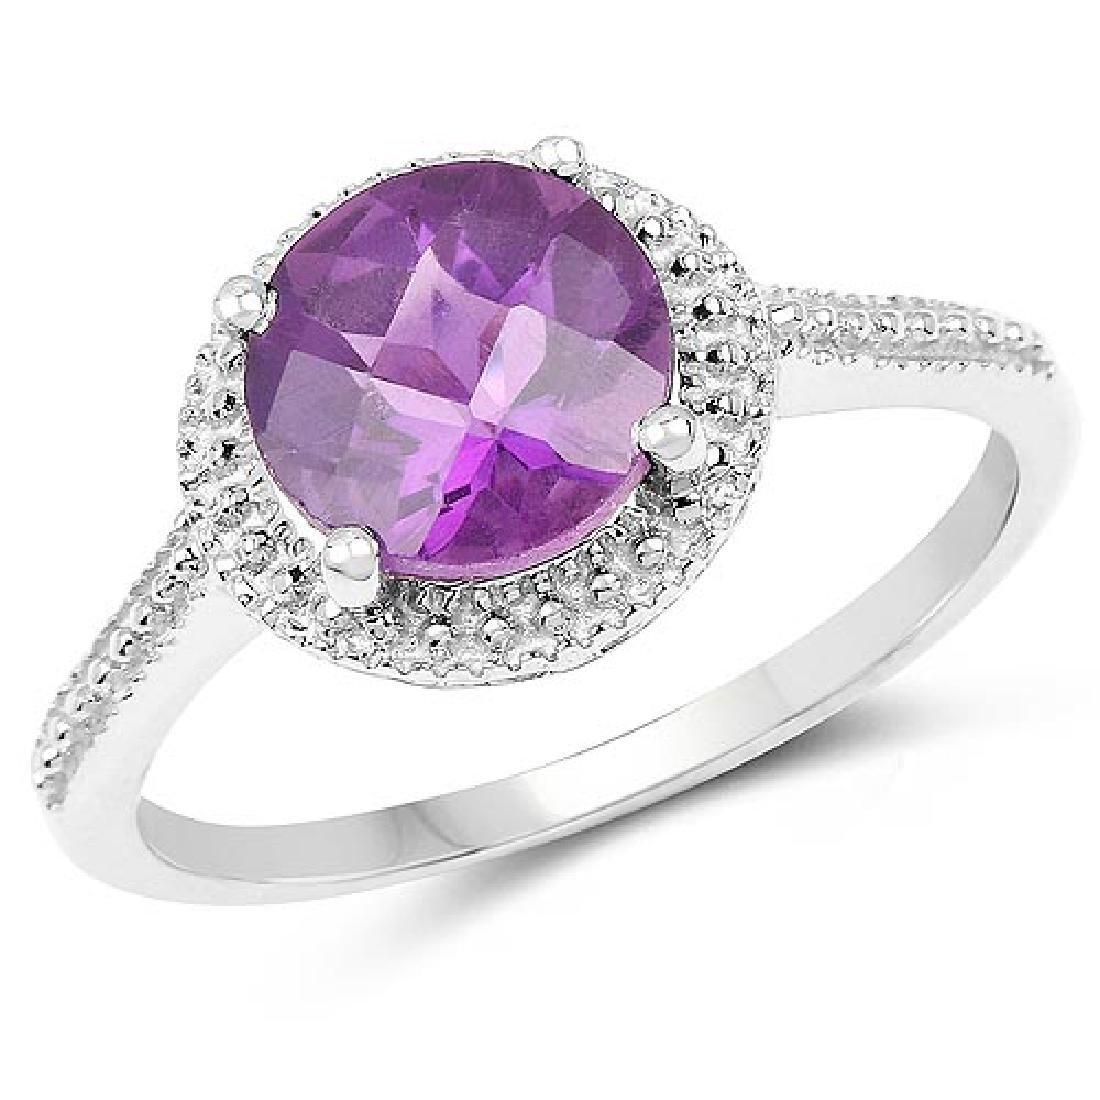 1.76 Carat Genuine Amethyst .925 Sterling Silver Ring